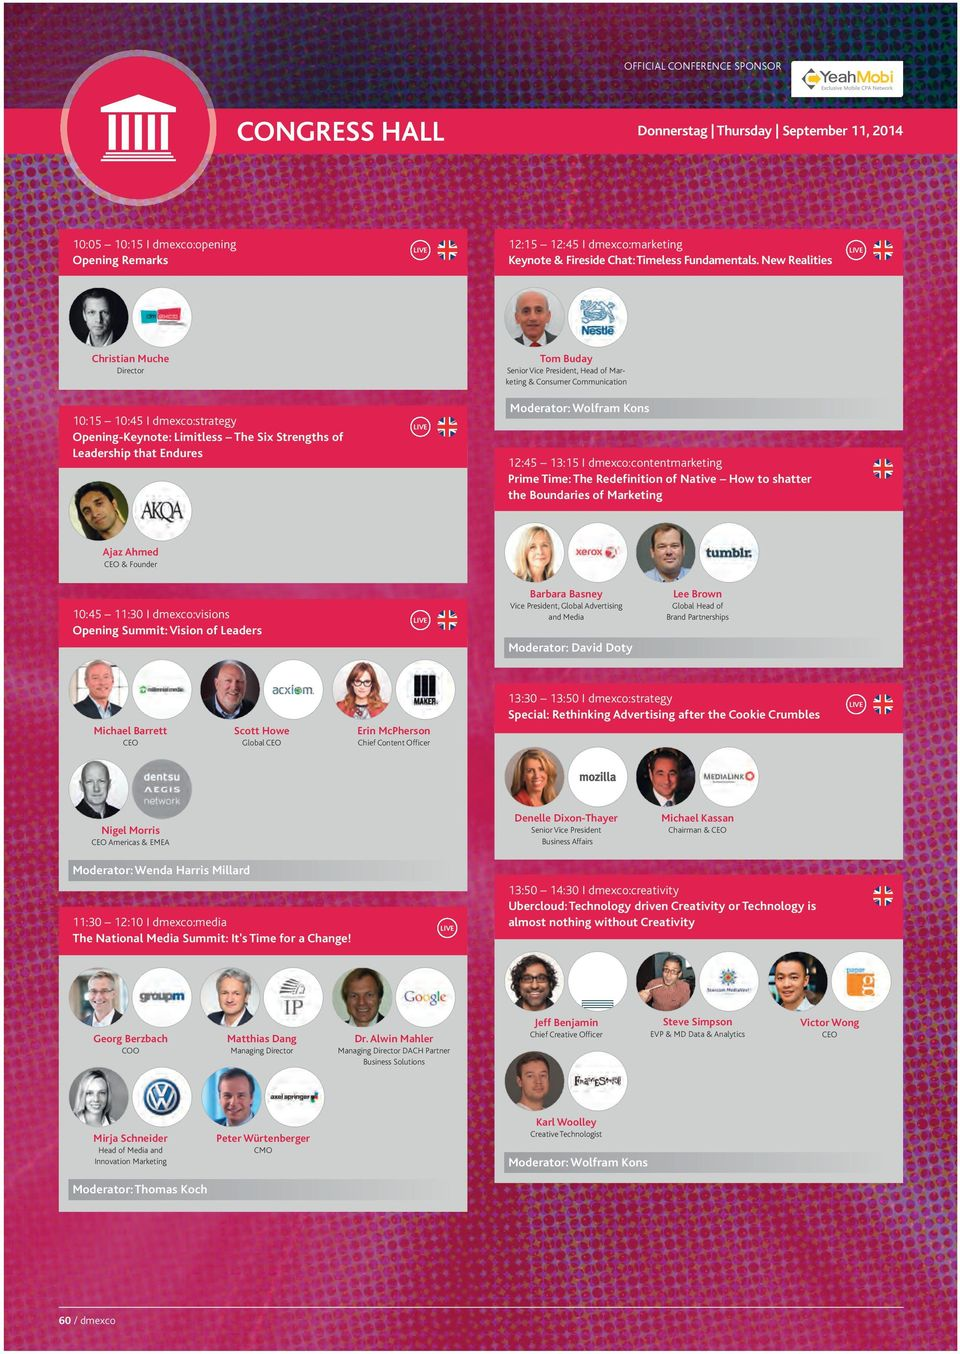 14 08:18 Seite 60 CONGReSS HALL 10:05 10:15 I dmexco:opening Opening Remarks Donnerstag Thursday September 11, 2014 12:15 12:45 I dmexco:marketing Keynote & Fireside Chat: Timeless Fundamentals.